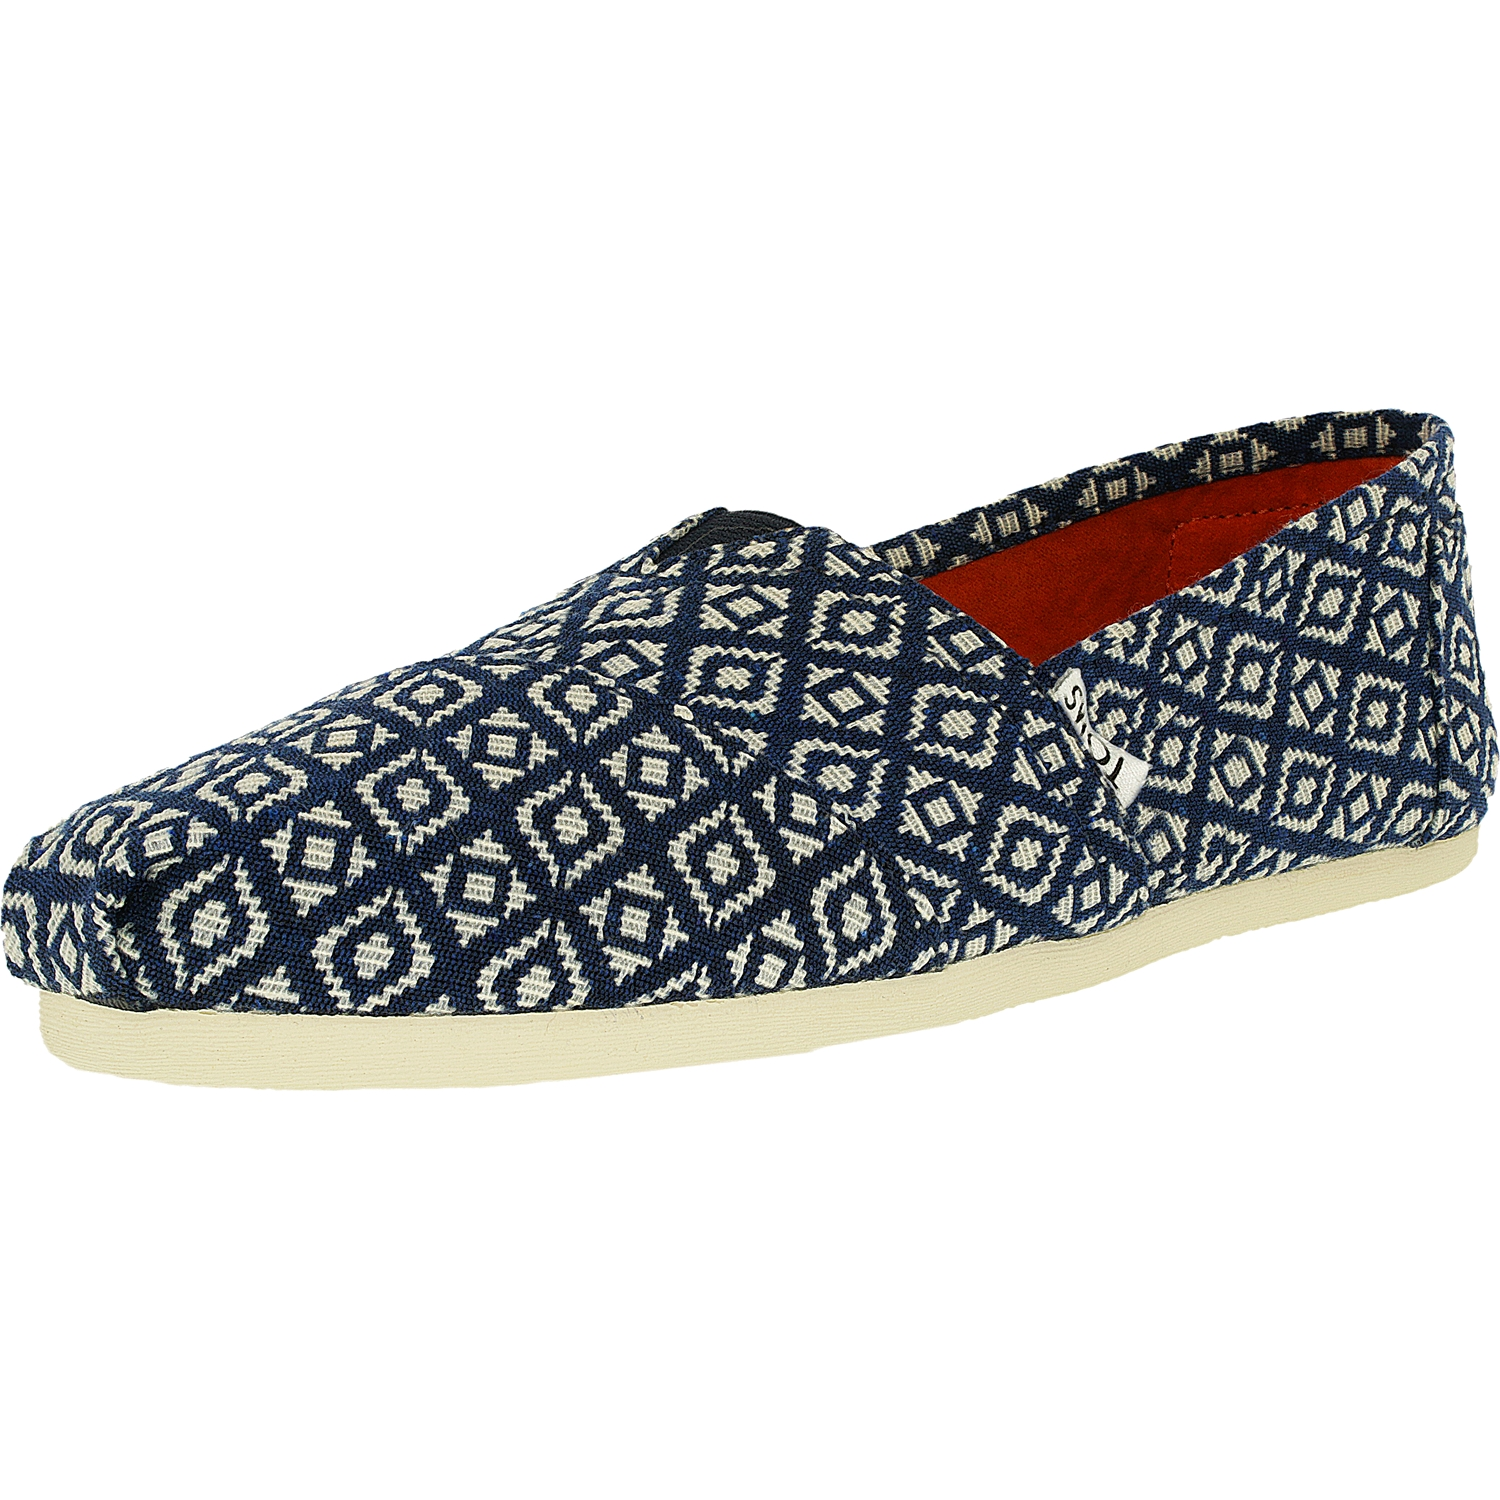 Toms Women's Classic Woven Ankle-High Satin Loafer